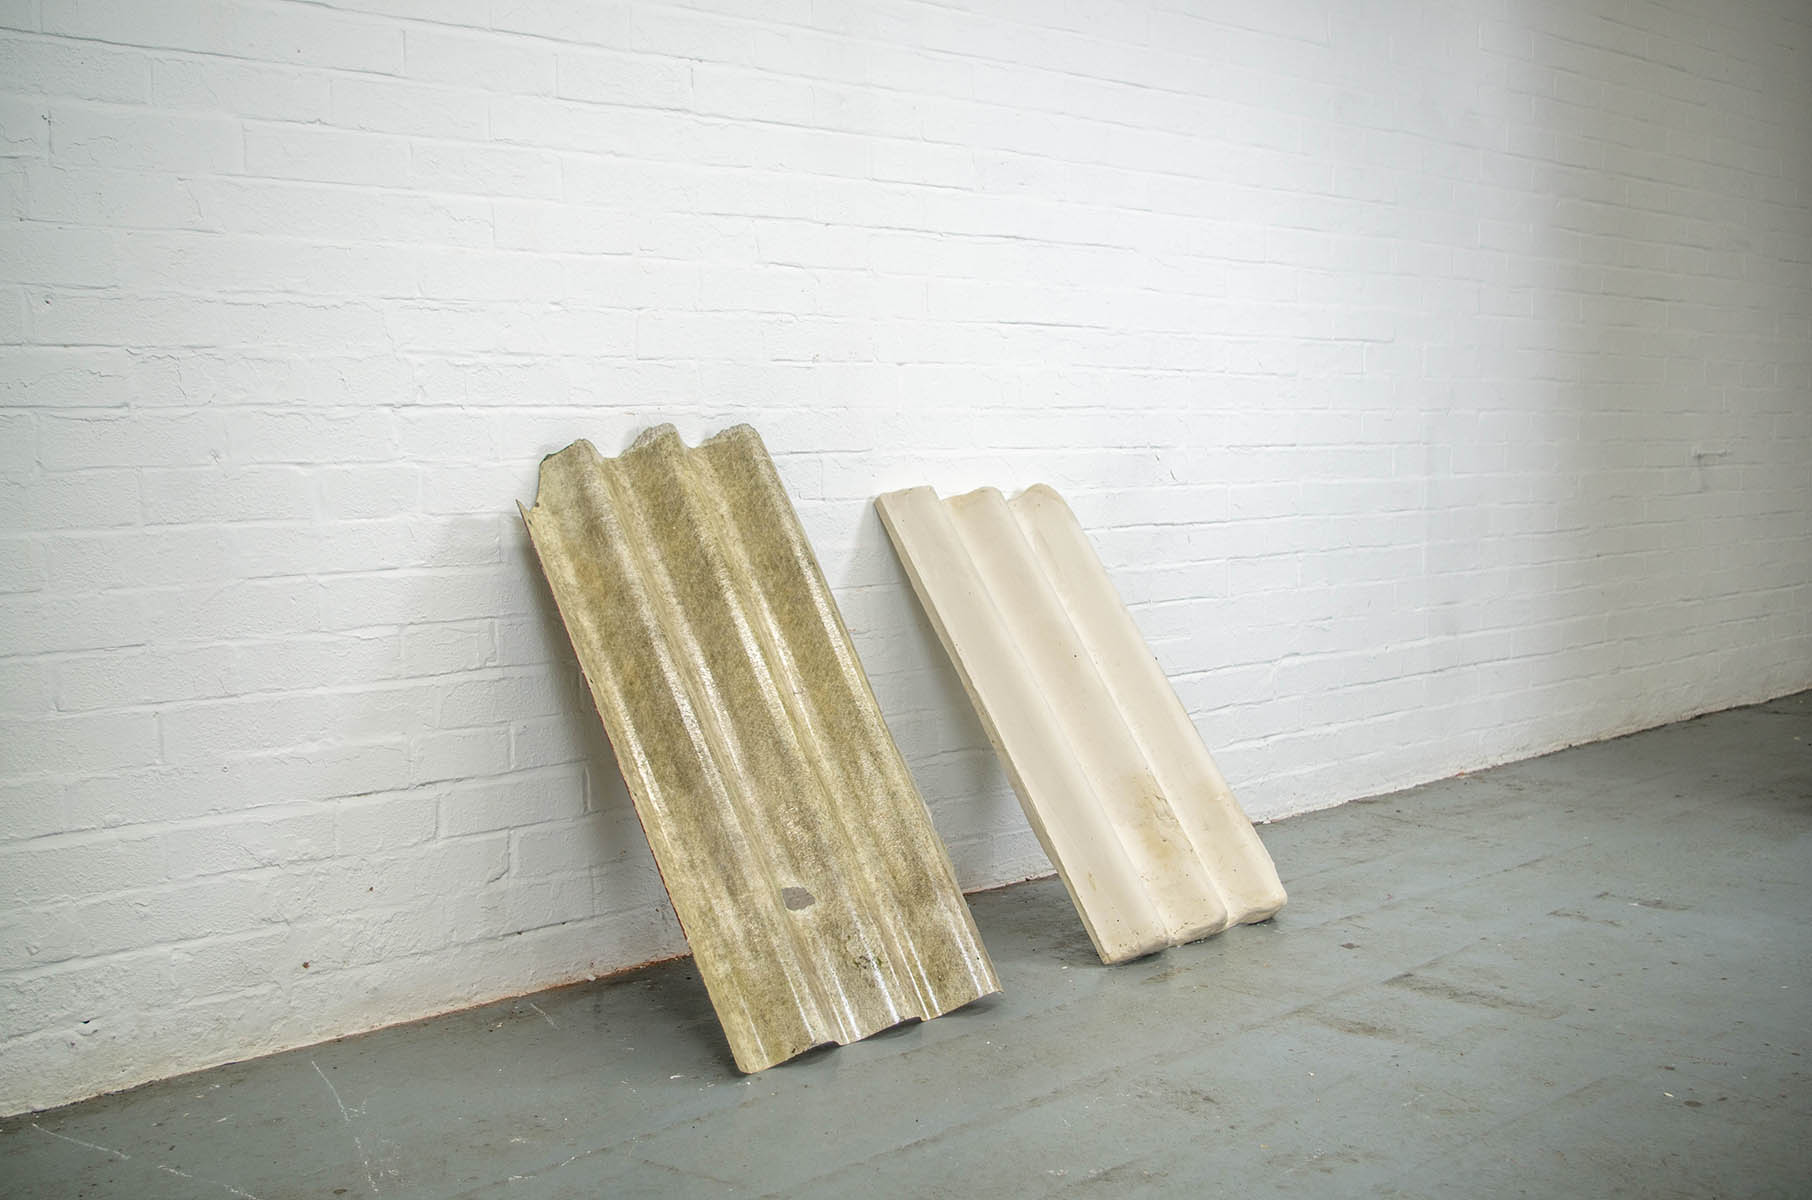 Plaster corrugated roofing sculpture by artist Molly Harcombe